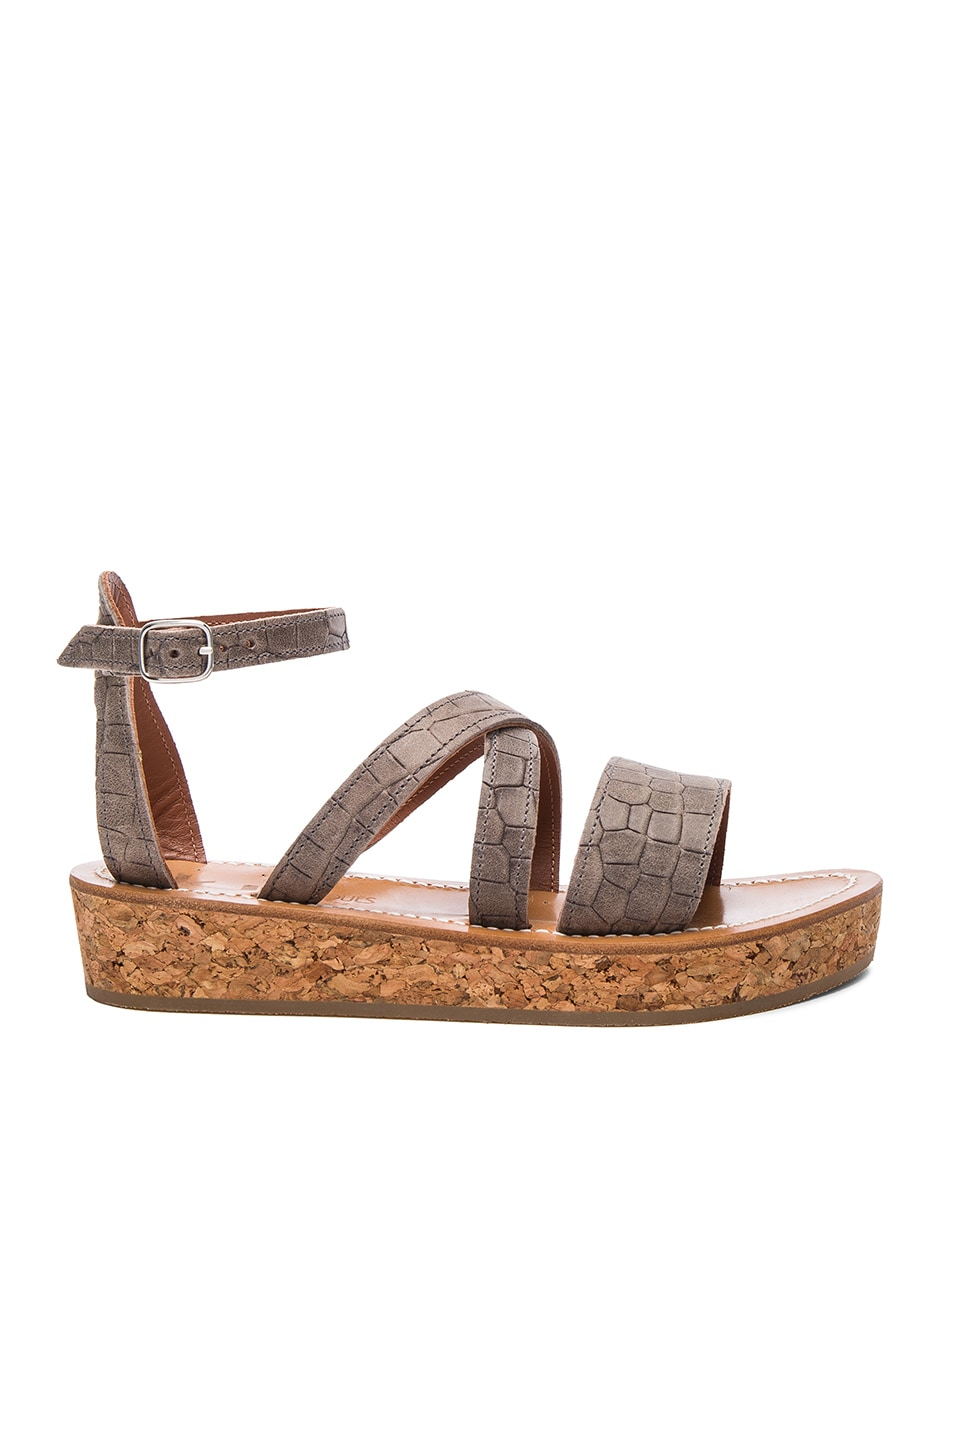 Image 1 of K Jacques Leather Thoronet Sandals in Tiles Trento